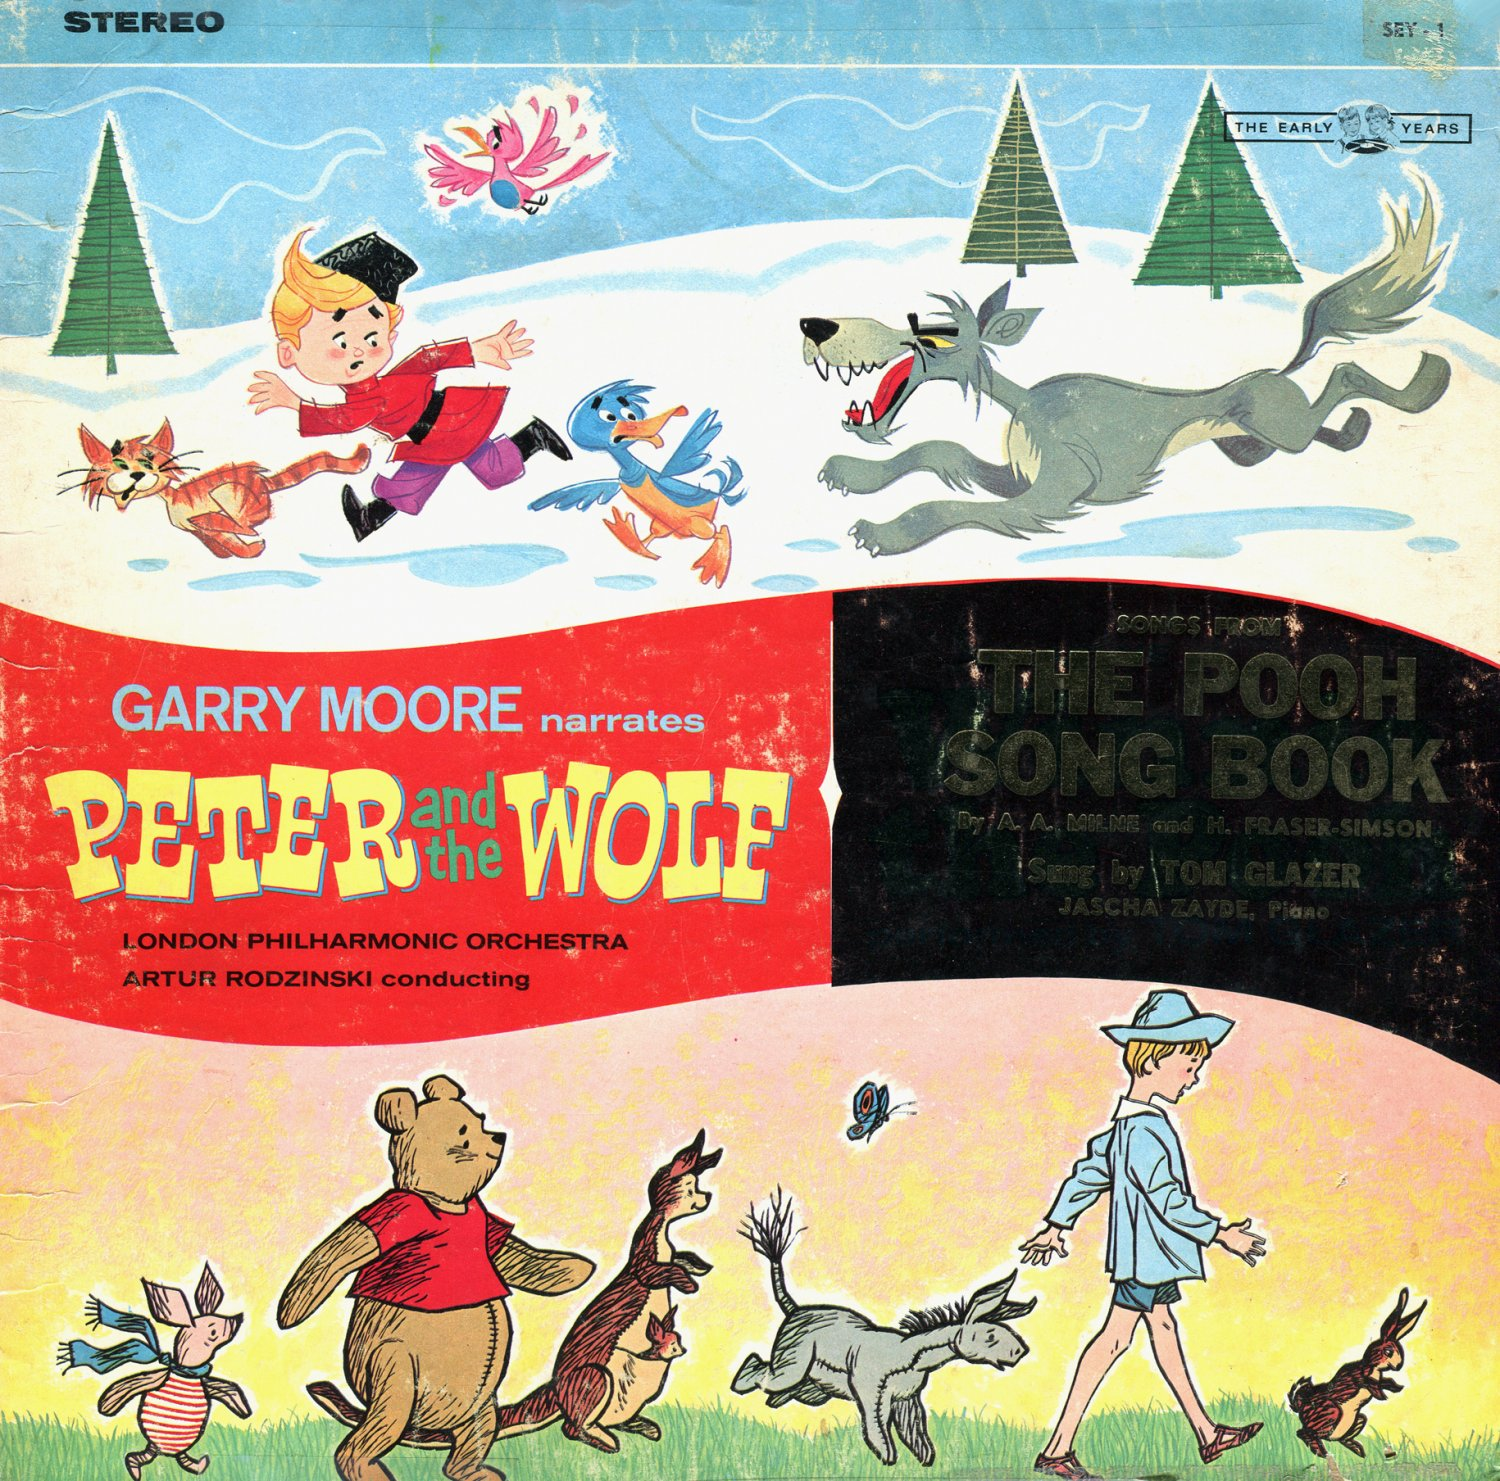 Peter And The Wolf & The Pooh Song Book - Garry Moore & Tom Glazer LP/CD